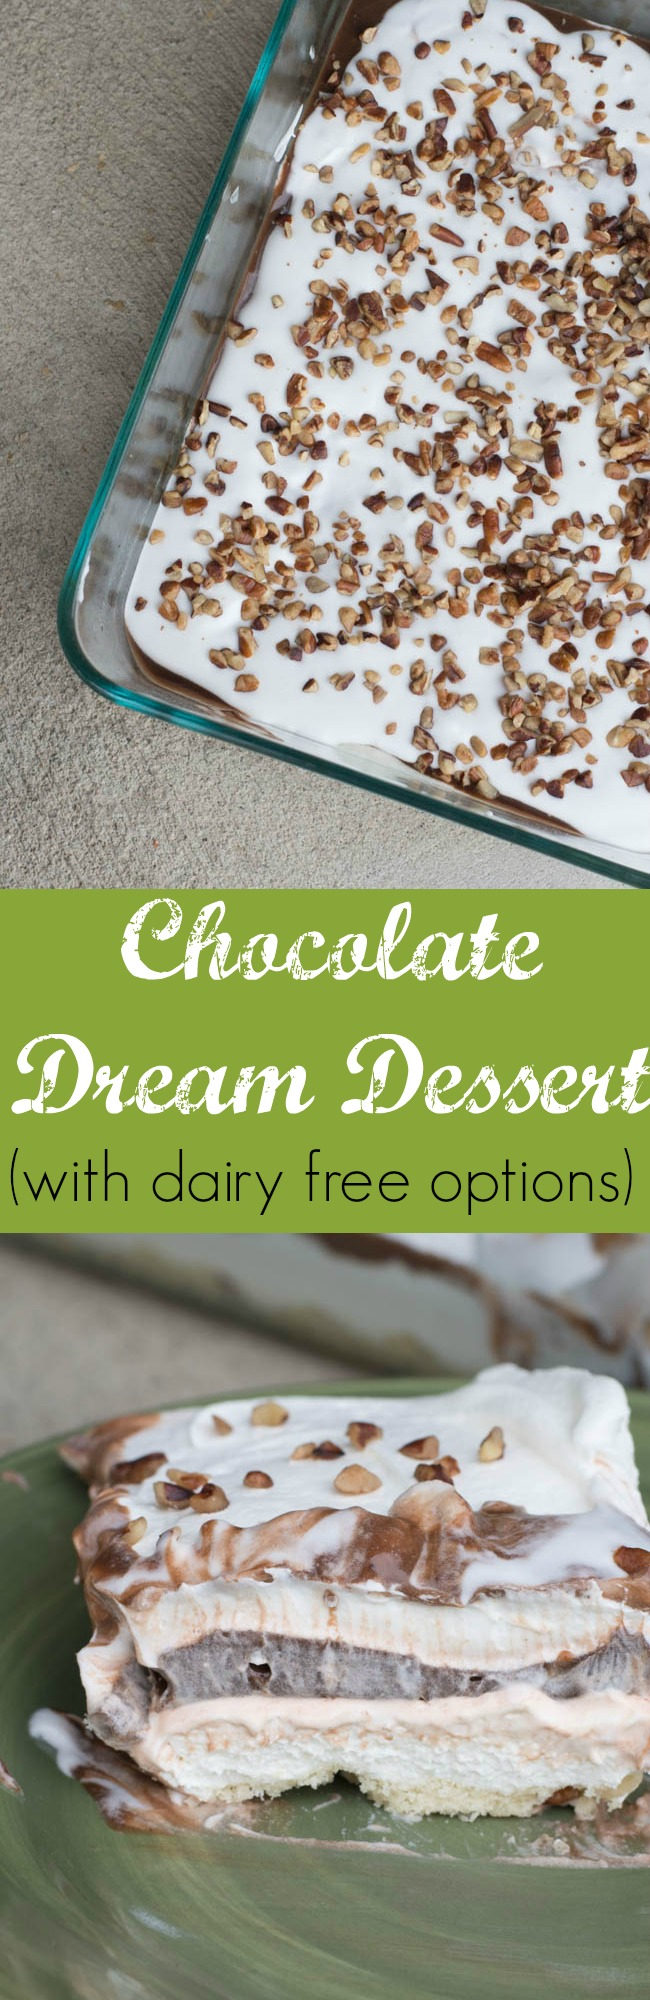 This chocolate dream dessert has dairy free options so everyone can enjoy it. It's amazing, creamy, and chocolate-y. What else could you want in a dessert?! via @clarkscondensed